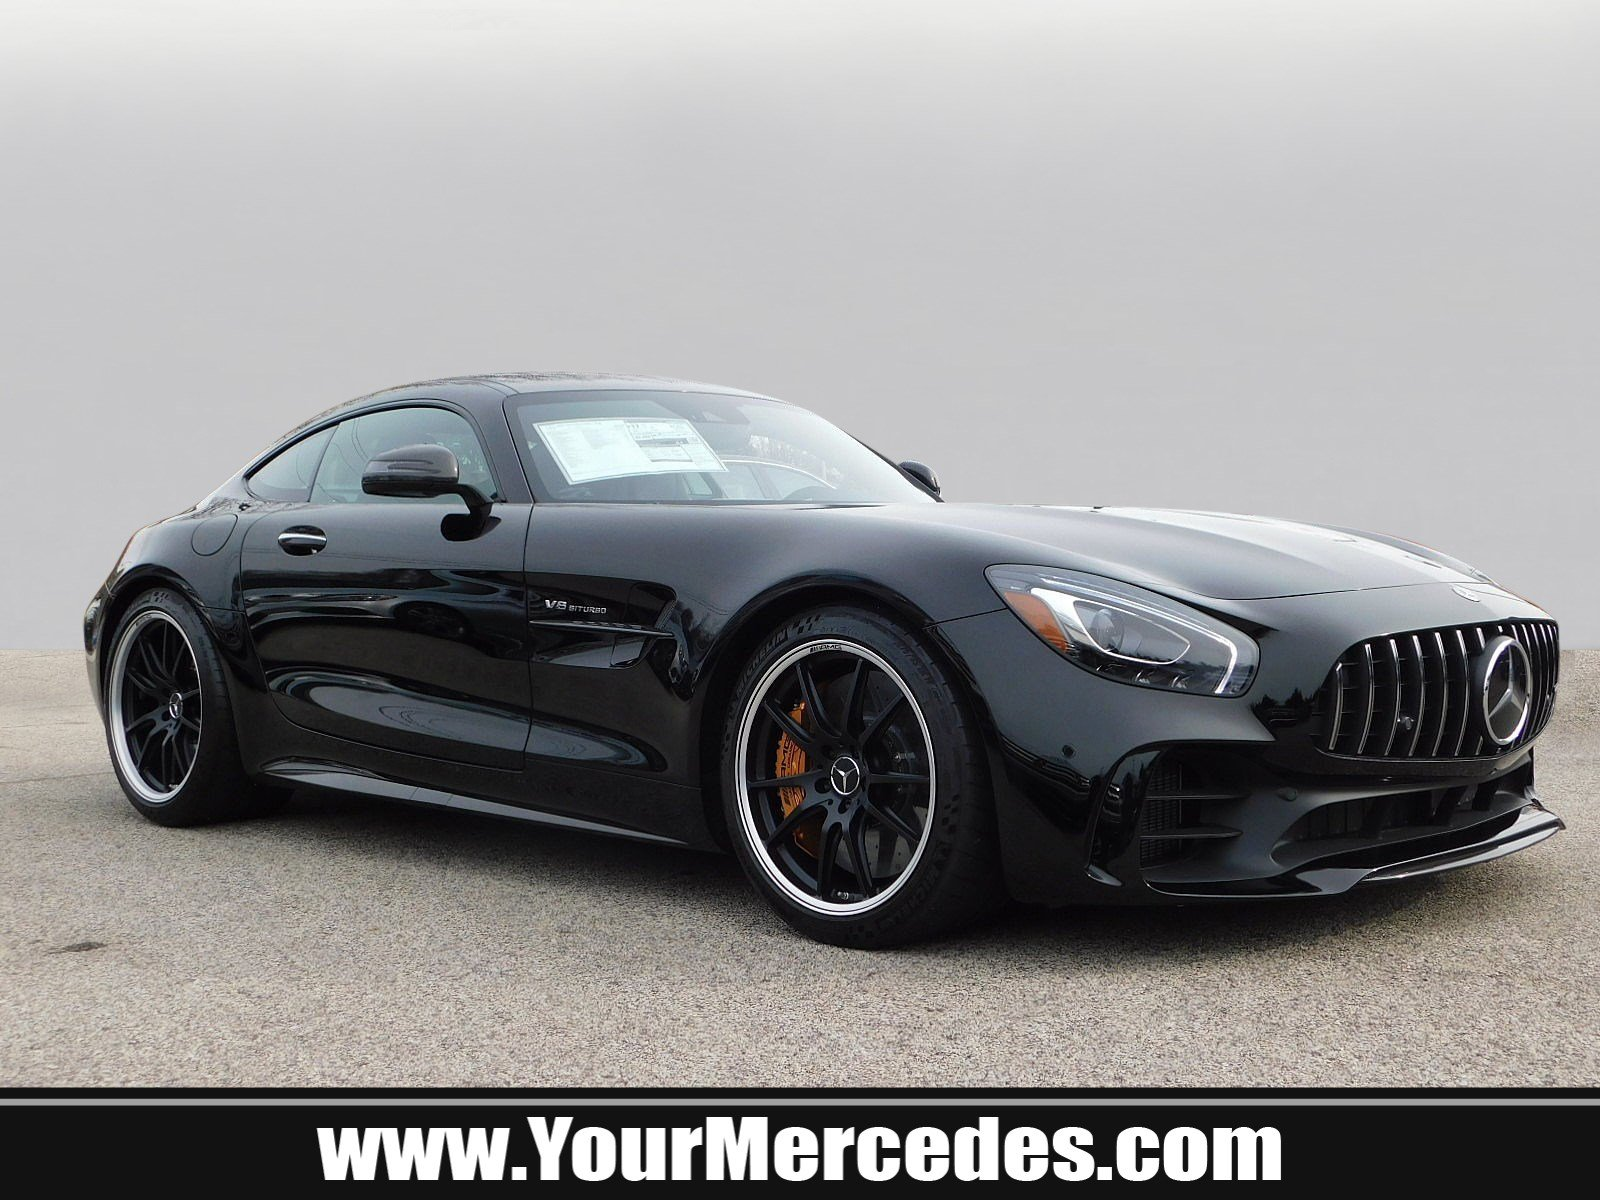 New 2019 Mercedes Benz Amg Gt Amg Gt R 2dr Car In Egg Harbor